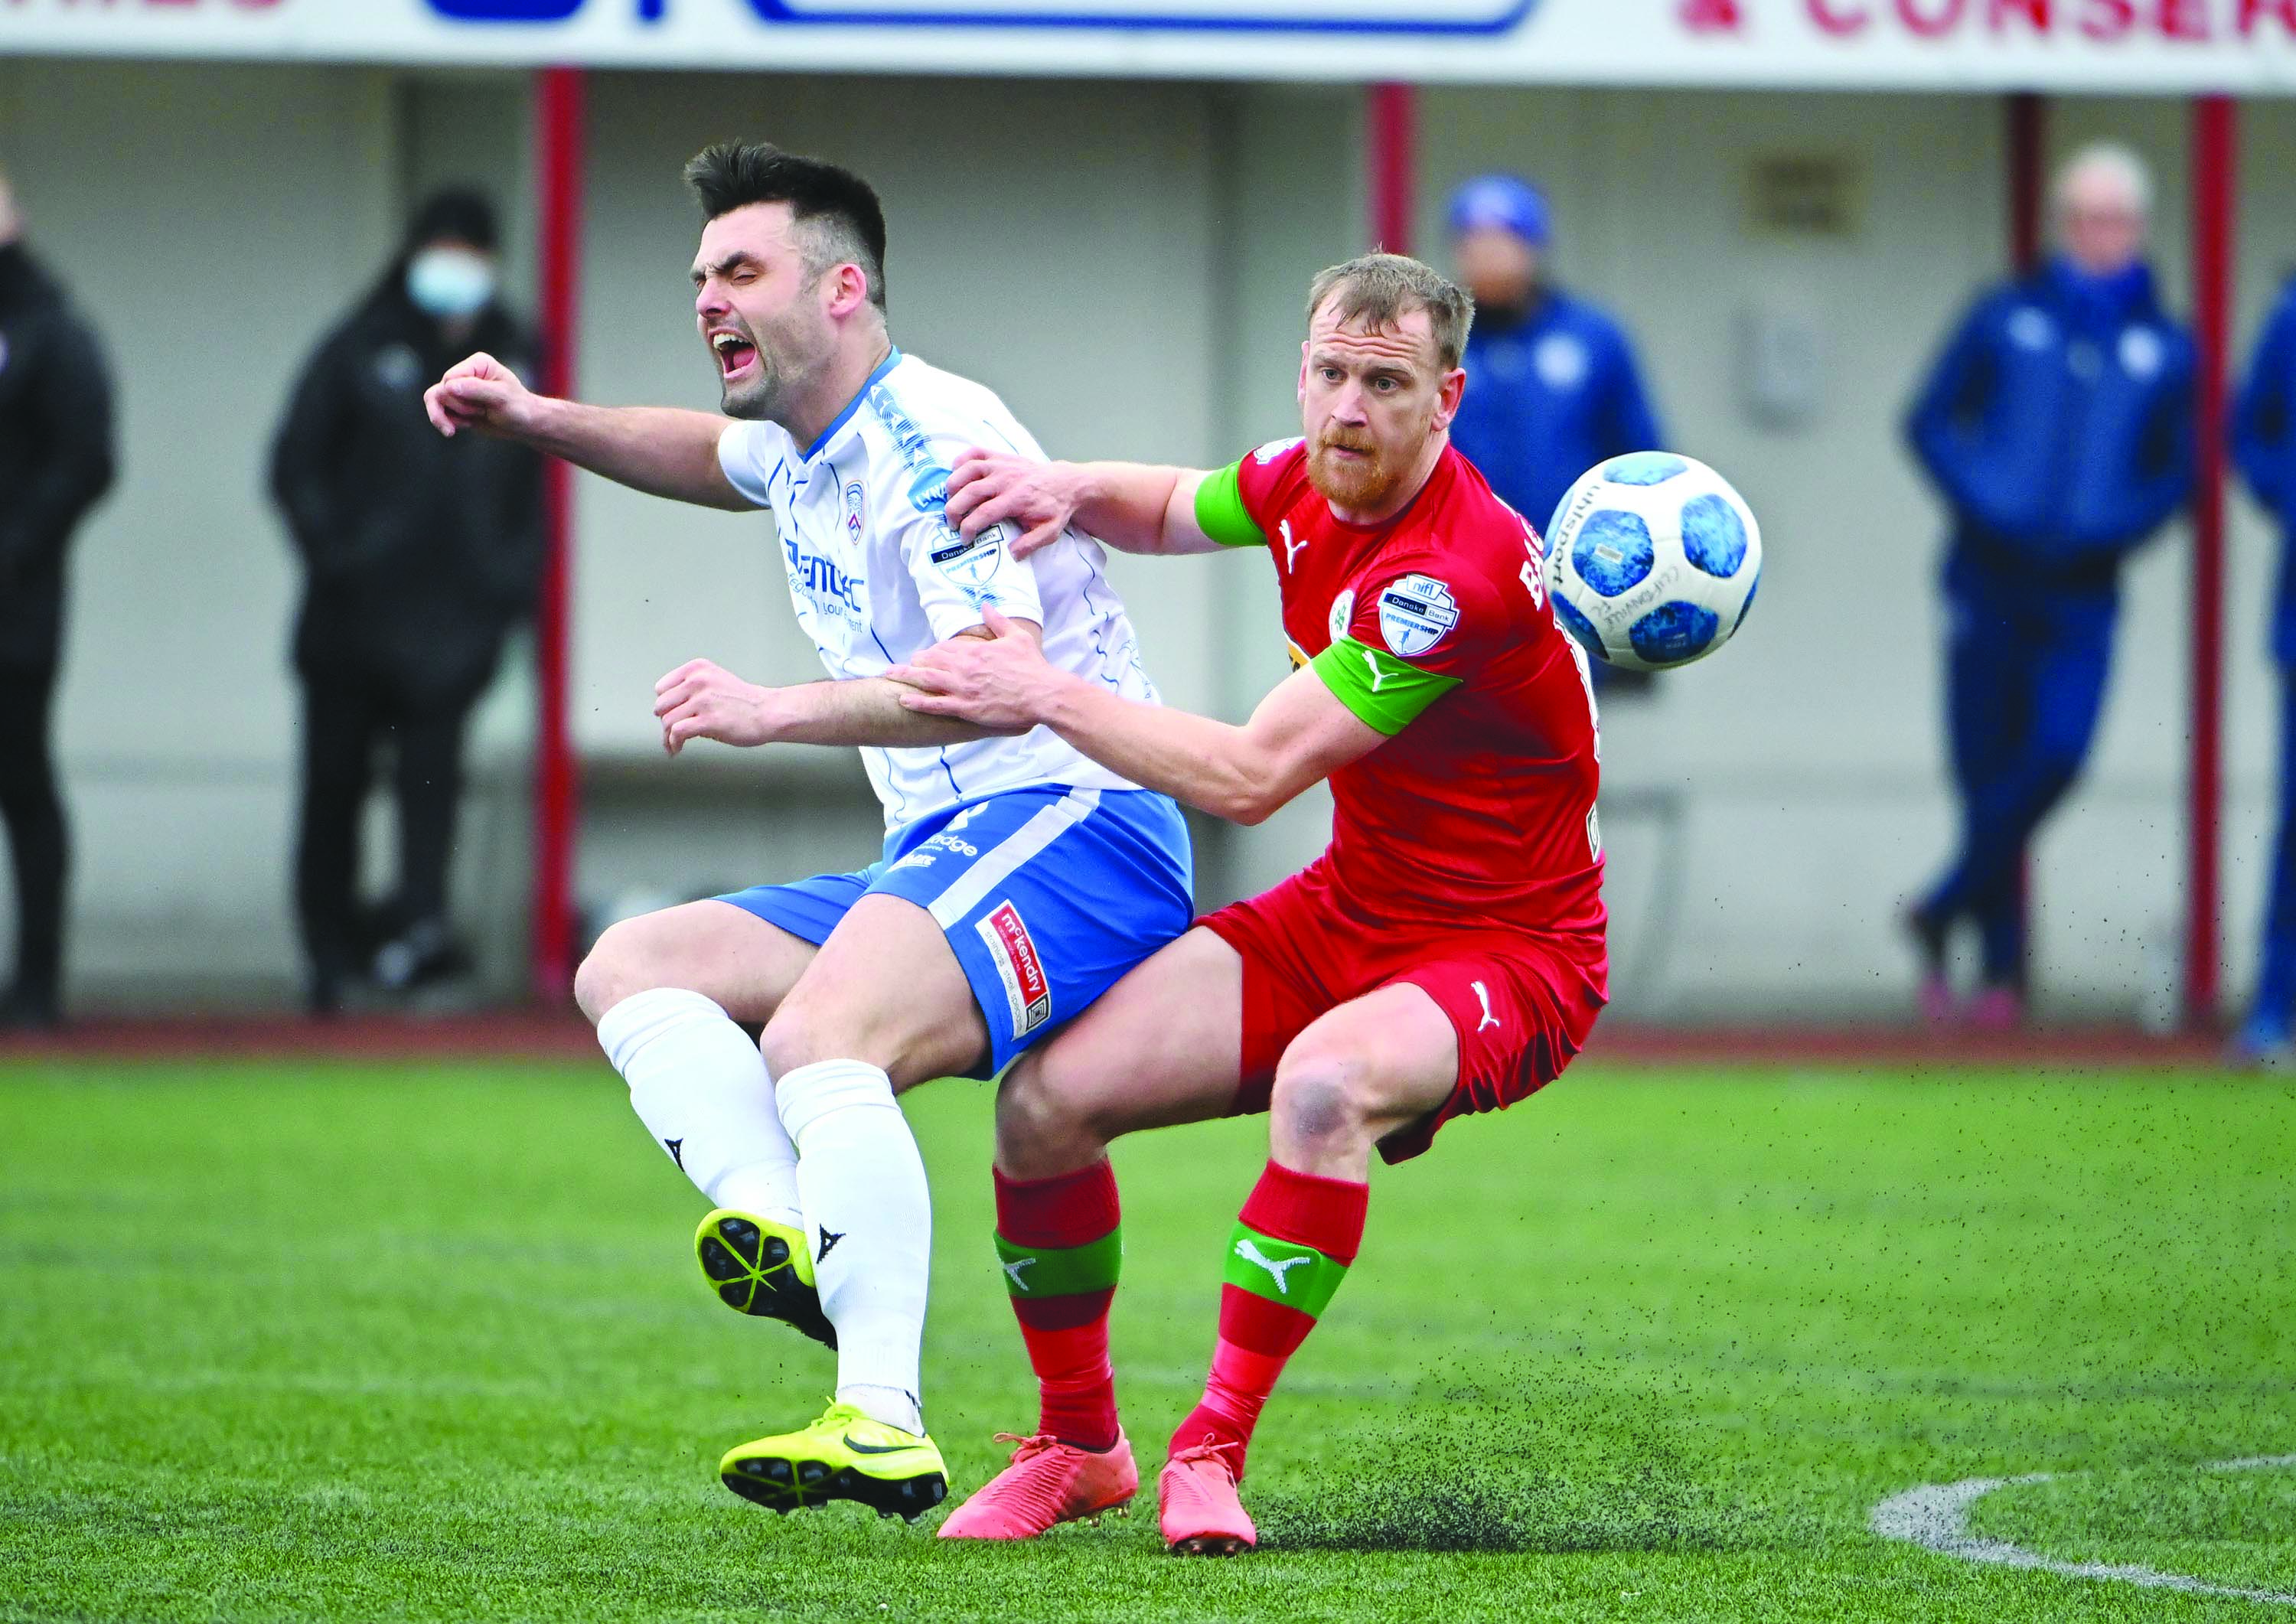 Liam Bagnall is in line to return to the Cliftonville team having been left out as a precaution against Portstewart